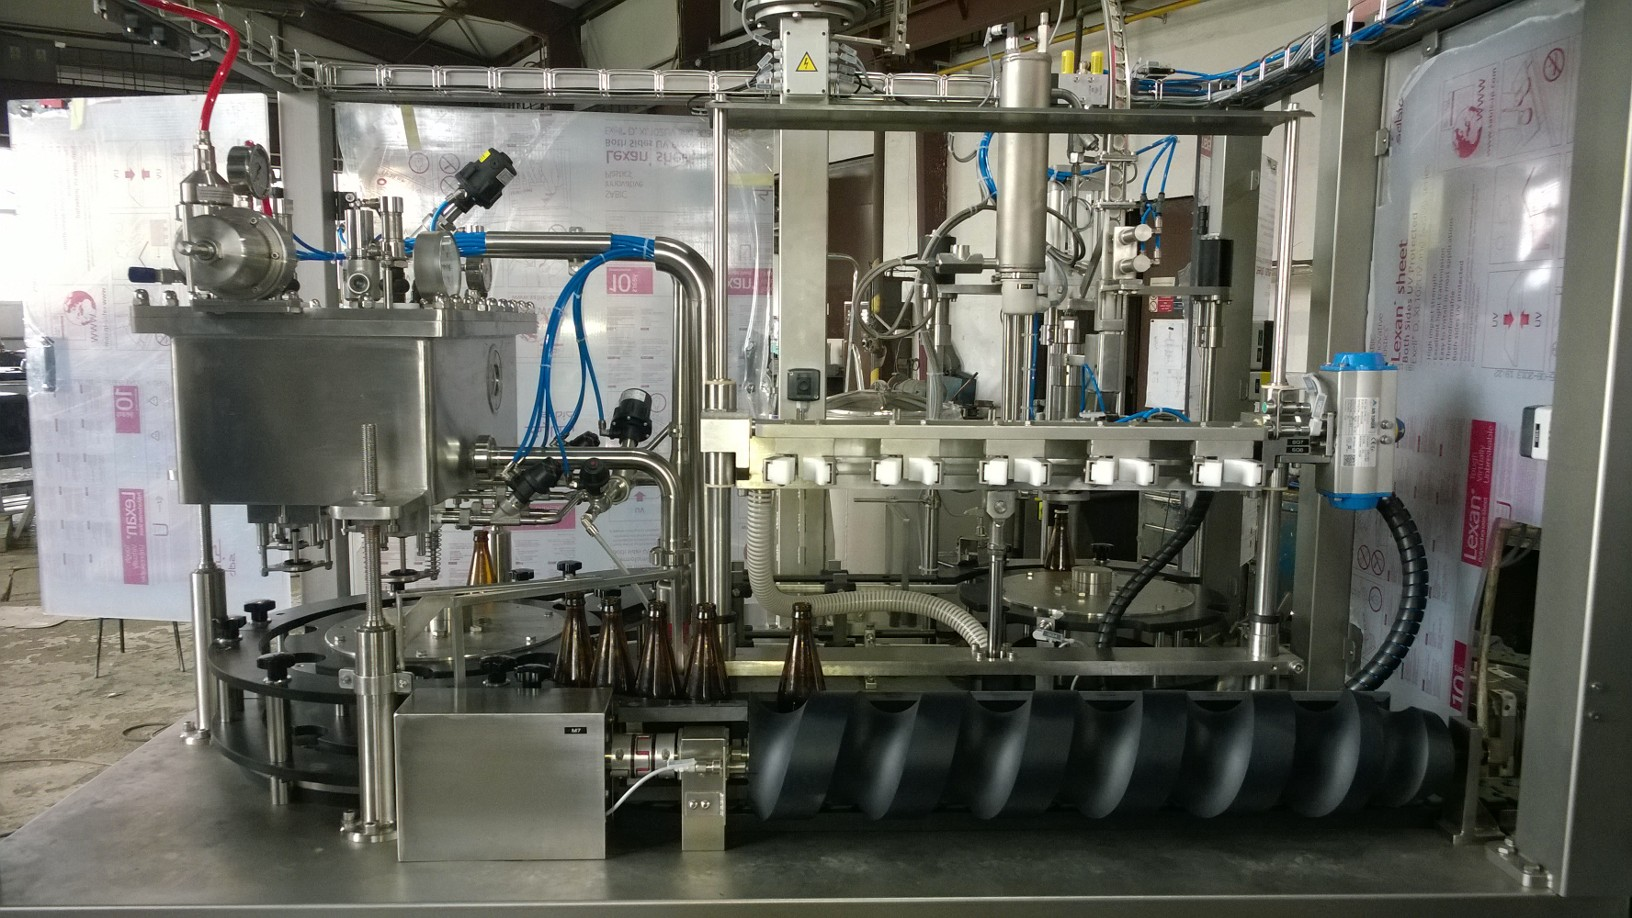 Product picture of Fully automatic linear step beverage glass bottles filling equipments for mini breweries and carbonated soft drinks production plants - output 500 BPH